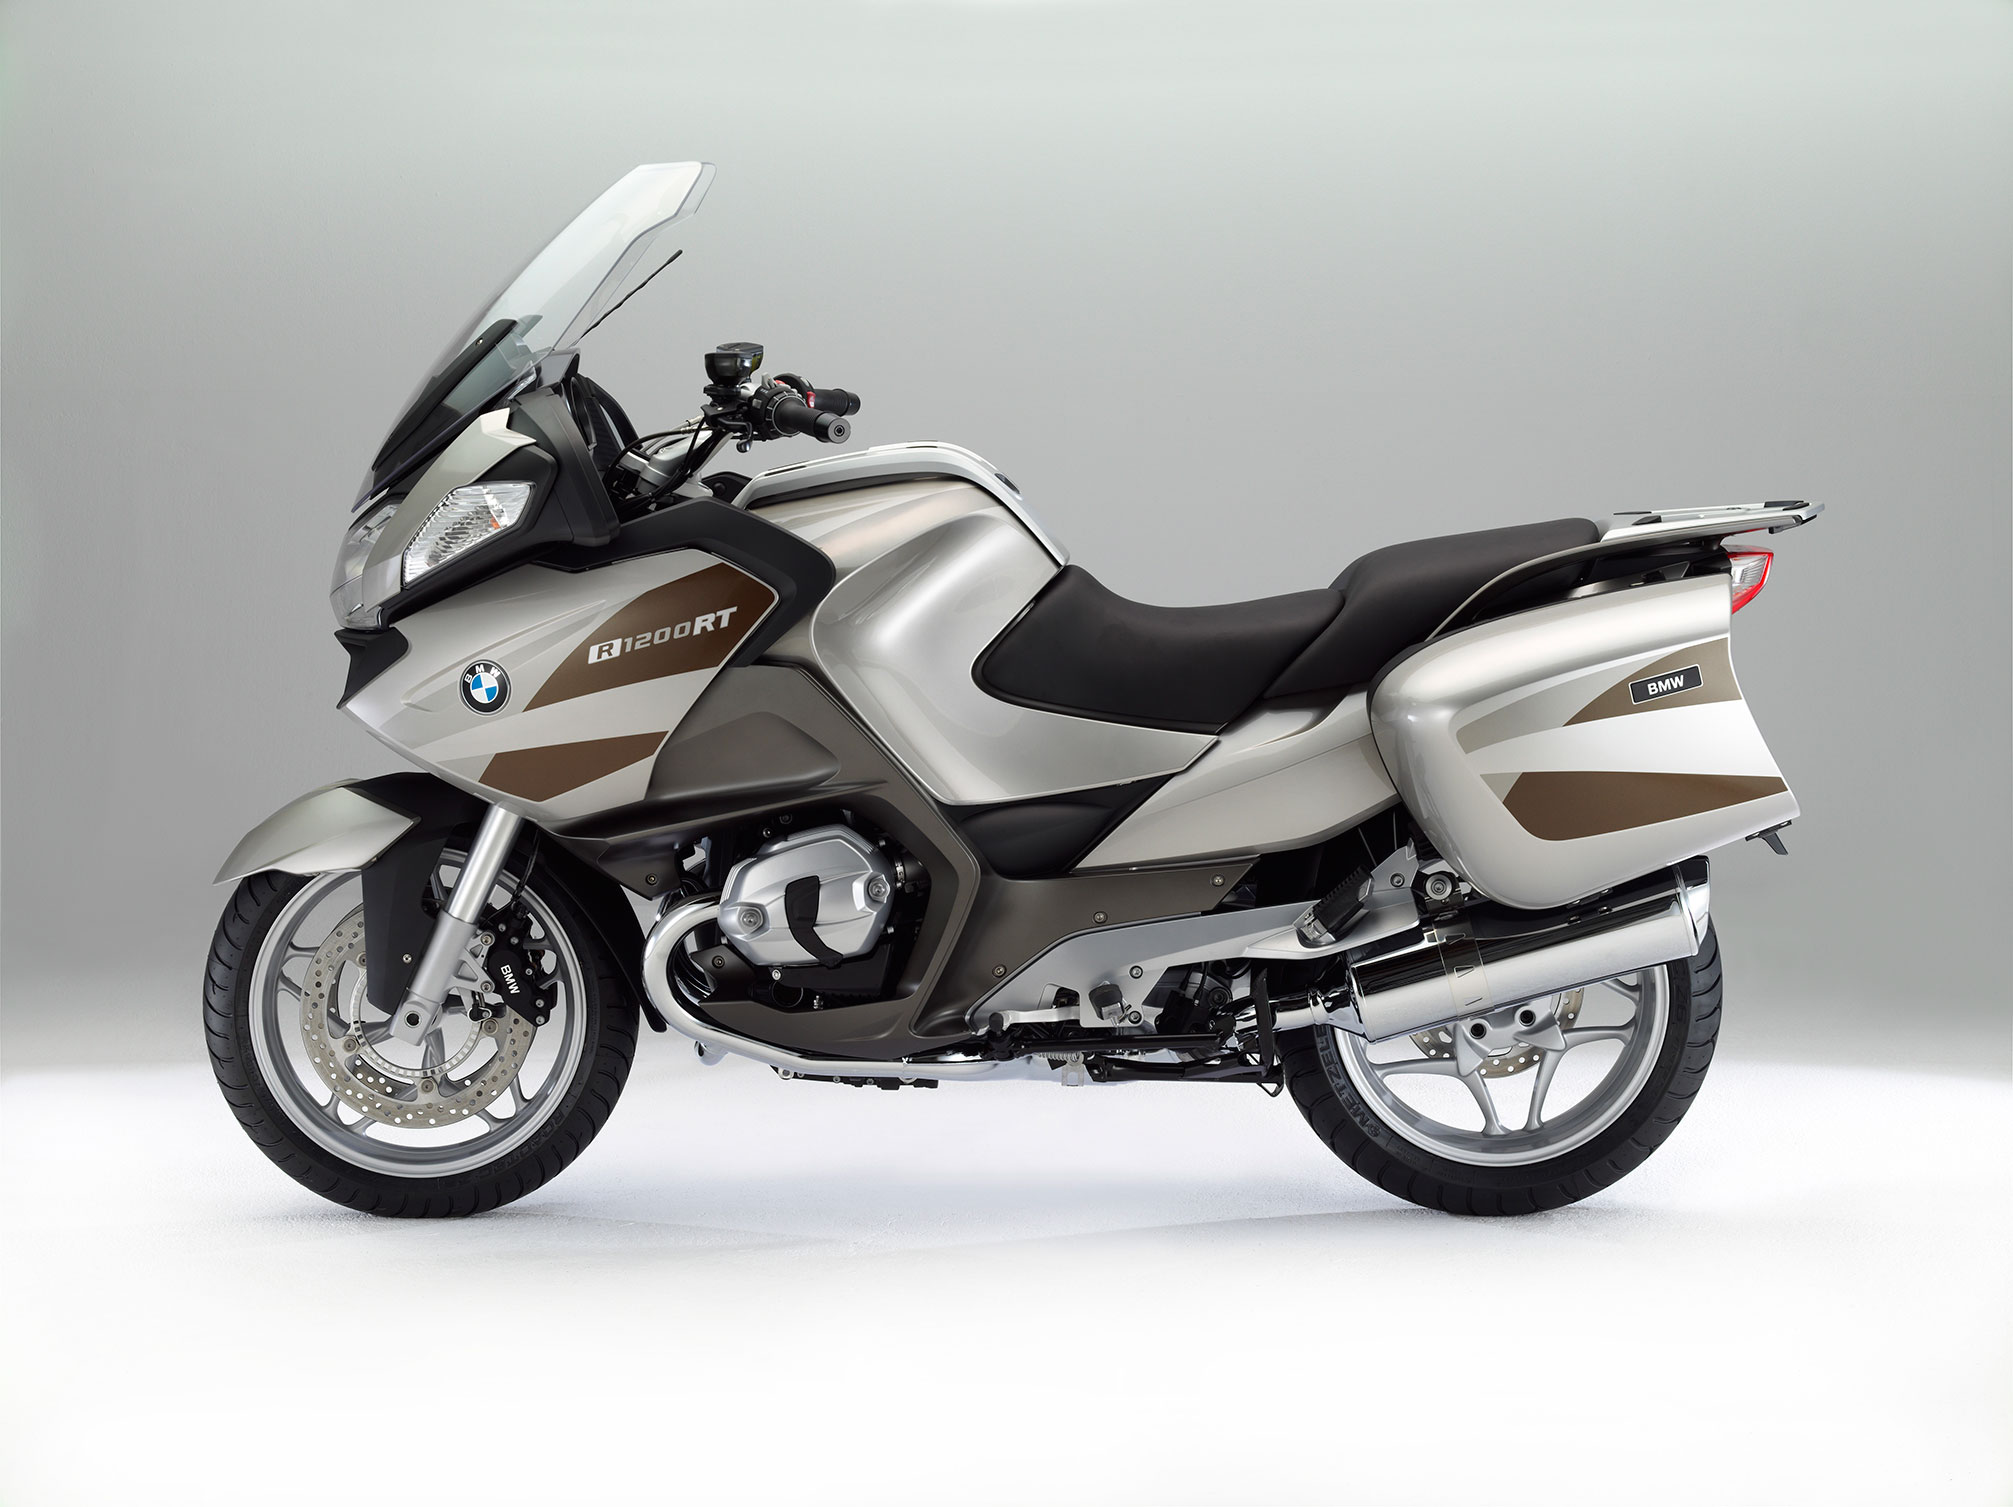 BMW R1200RT 90 Years Special Model images #8934